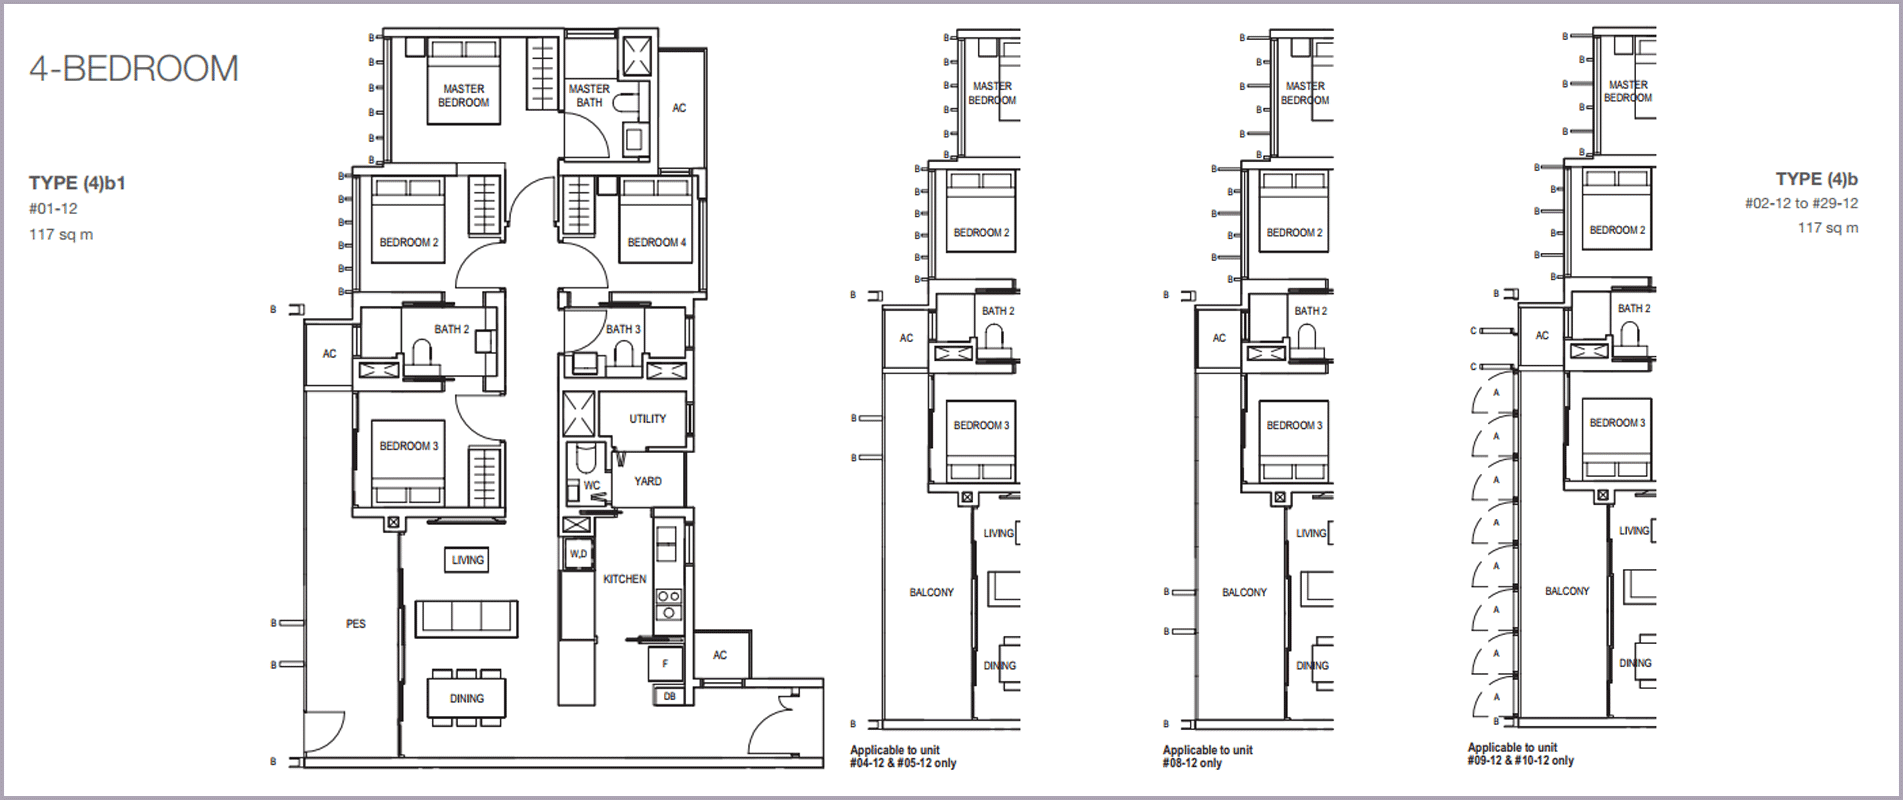 Midwood-hillview-floor plan 4BR B